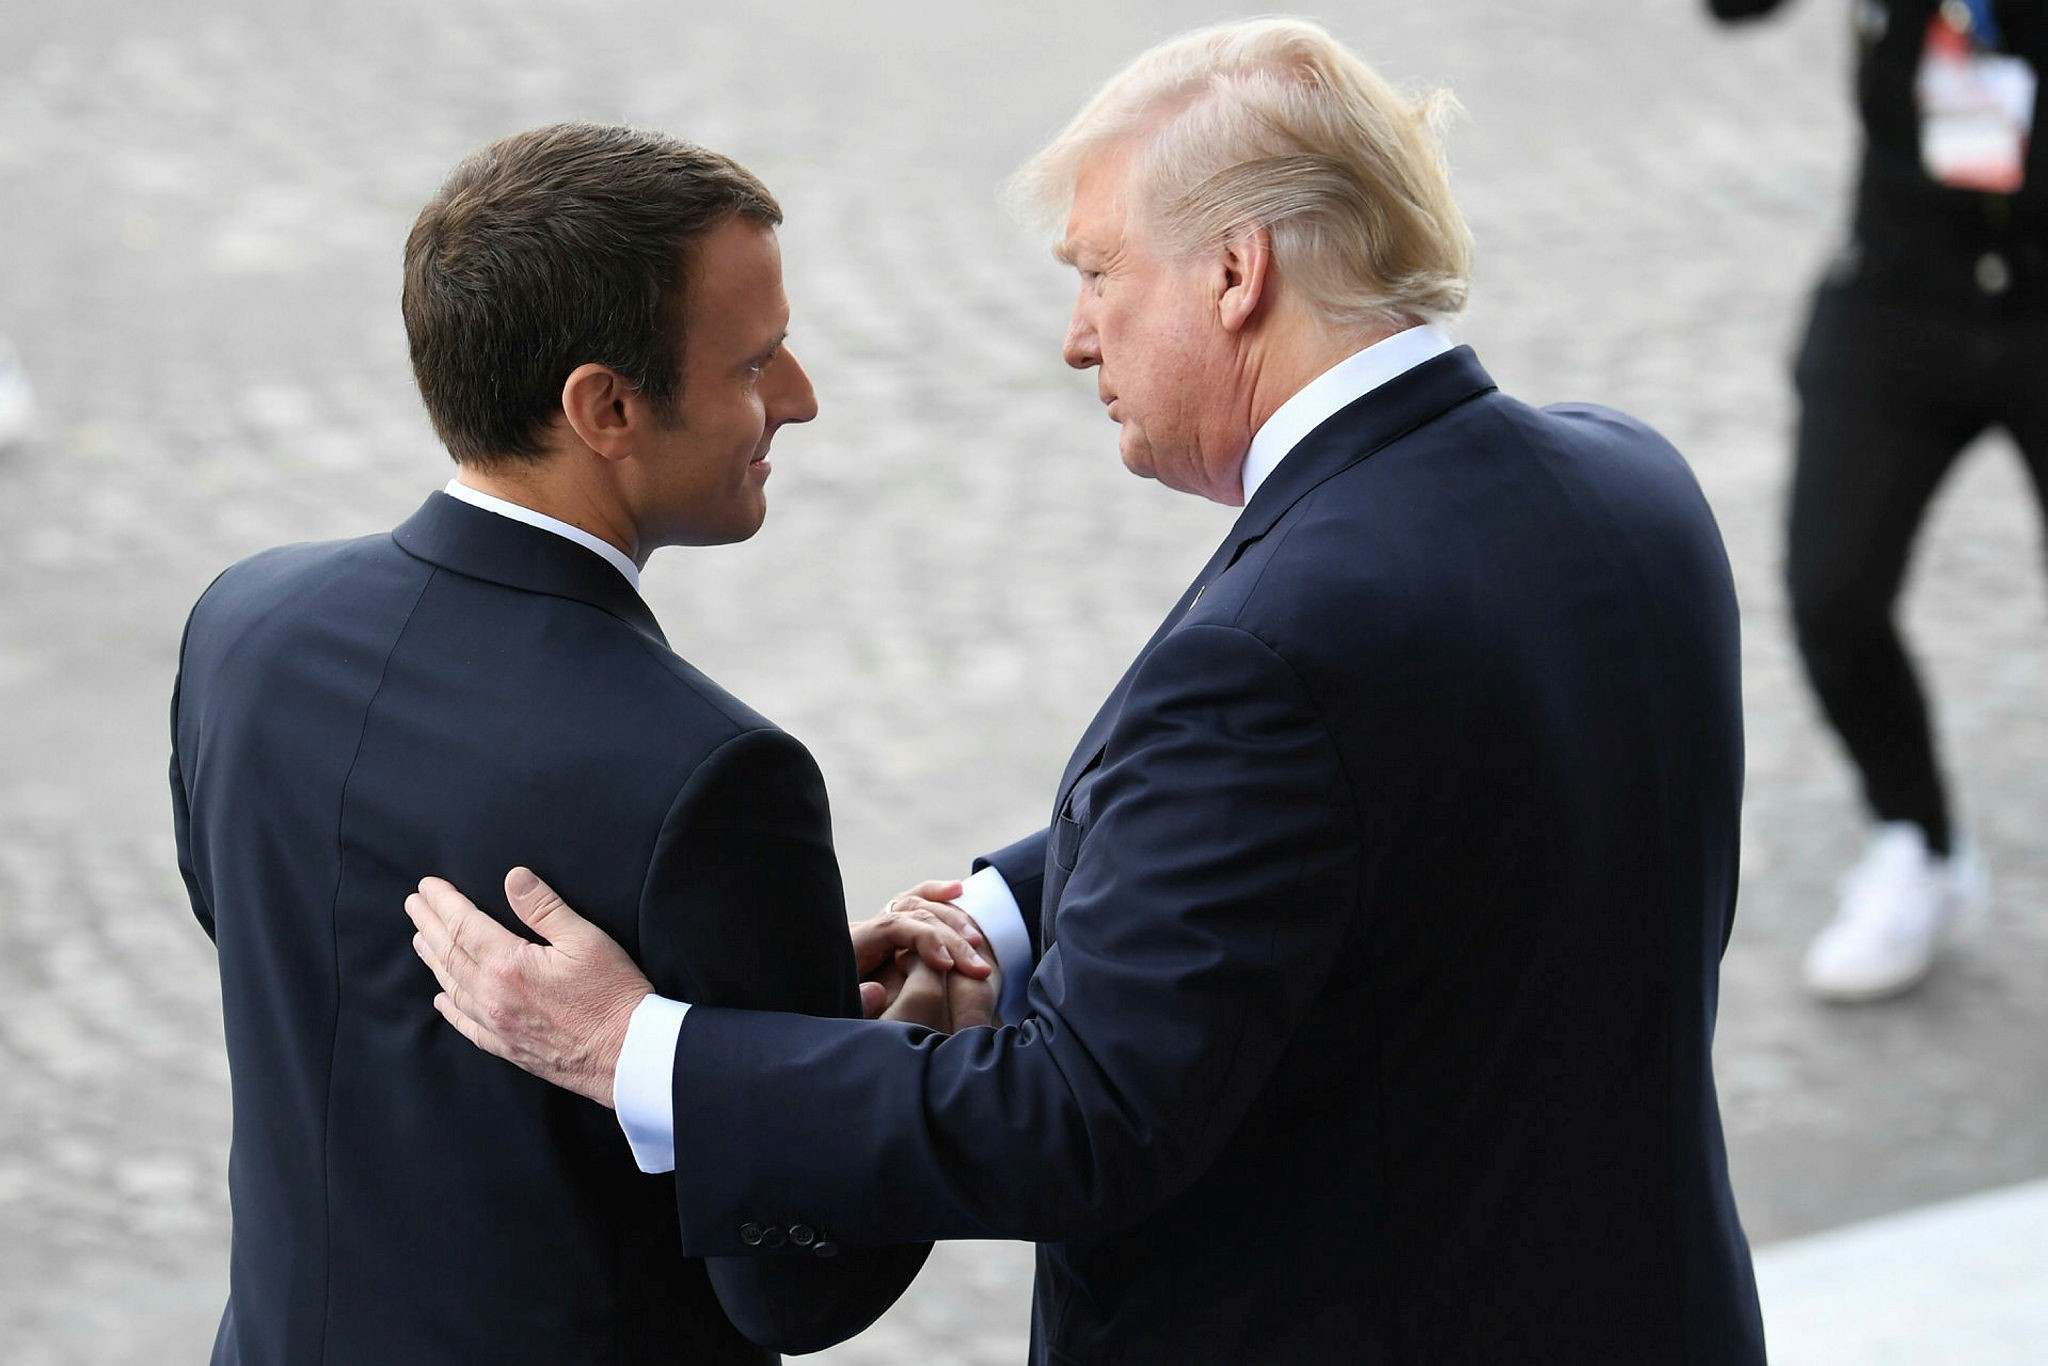 In this file photo taken on July 14, 2017 French President Emmanuel Macron (L) bids farewell to his US counterpart Donald Trump after the annual Bastille Day military parade on the Champs-Elysees avenue in Paris. (AFP Photo)